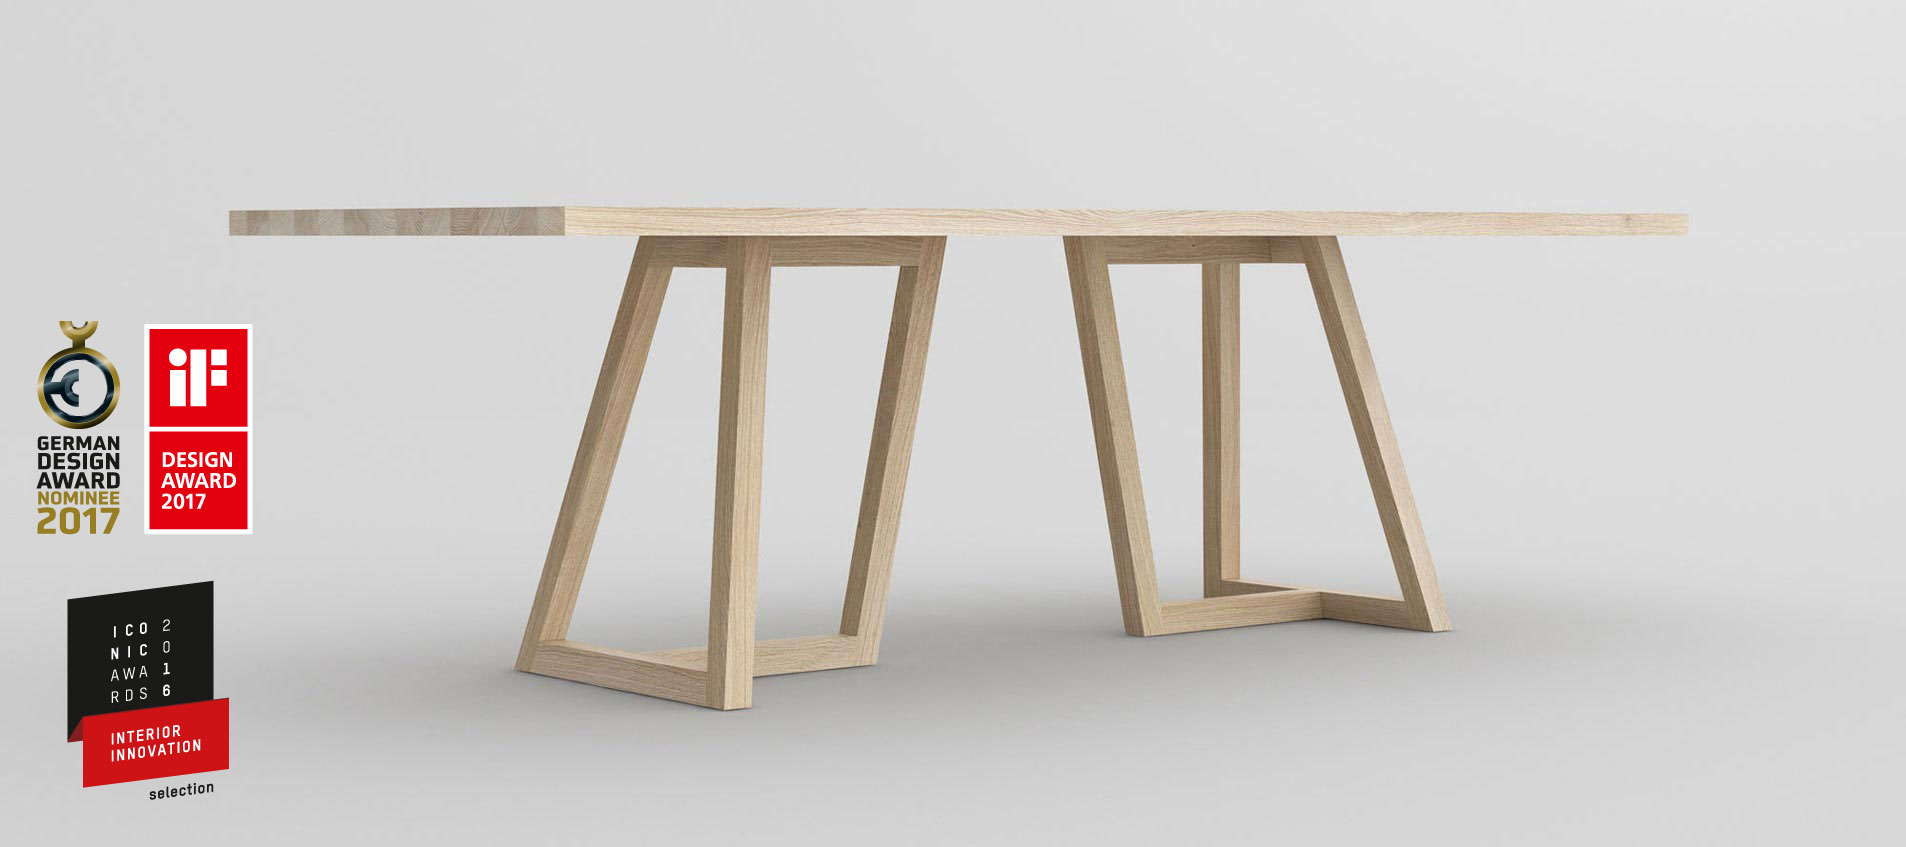 Vitamin Design | Functional Designer Solid Wood Furniture, Bespoke ... Amazing Ideas